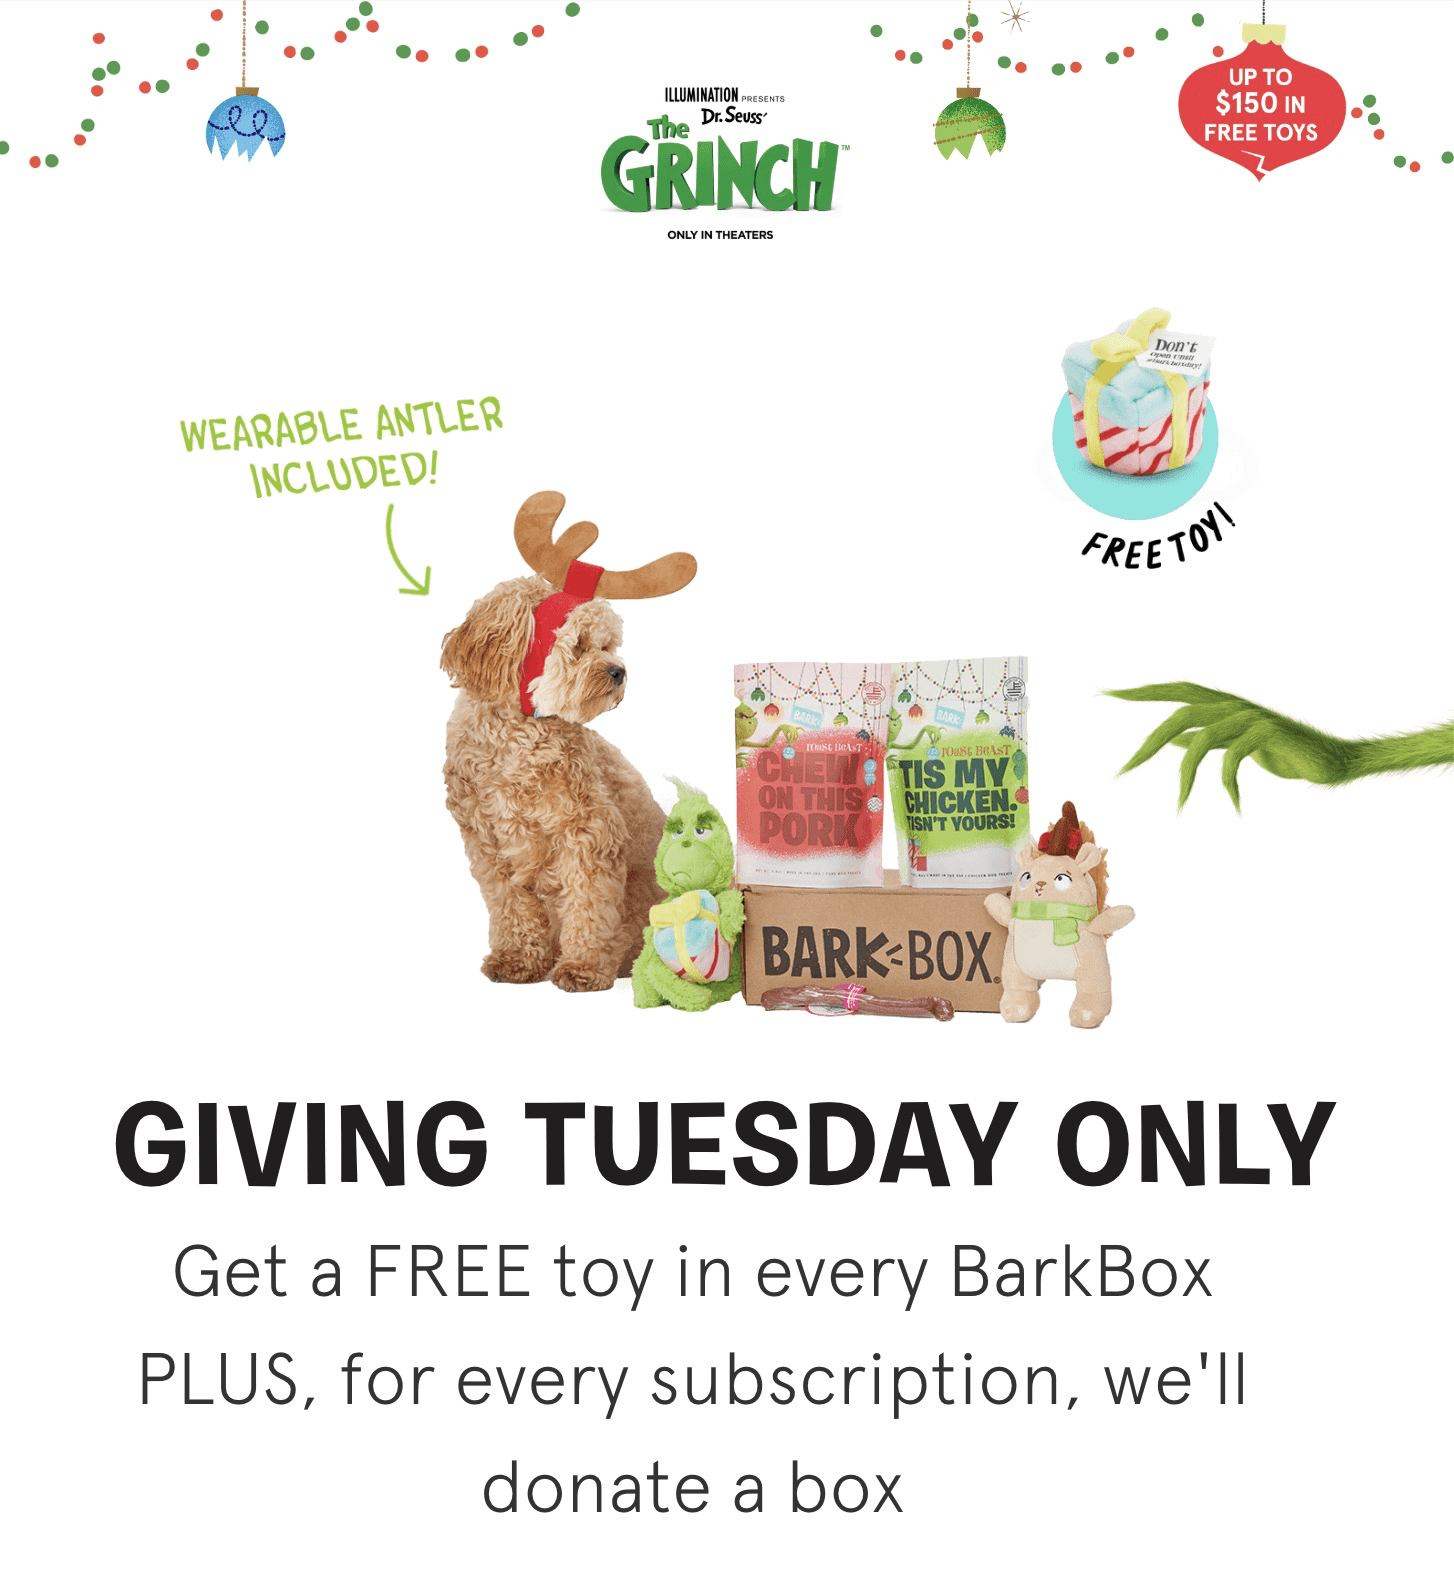 BarkBox Giving Tuesday Coupon: Get FREE Bonus Toys On 6+ Month Subscription + Donate a Box!